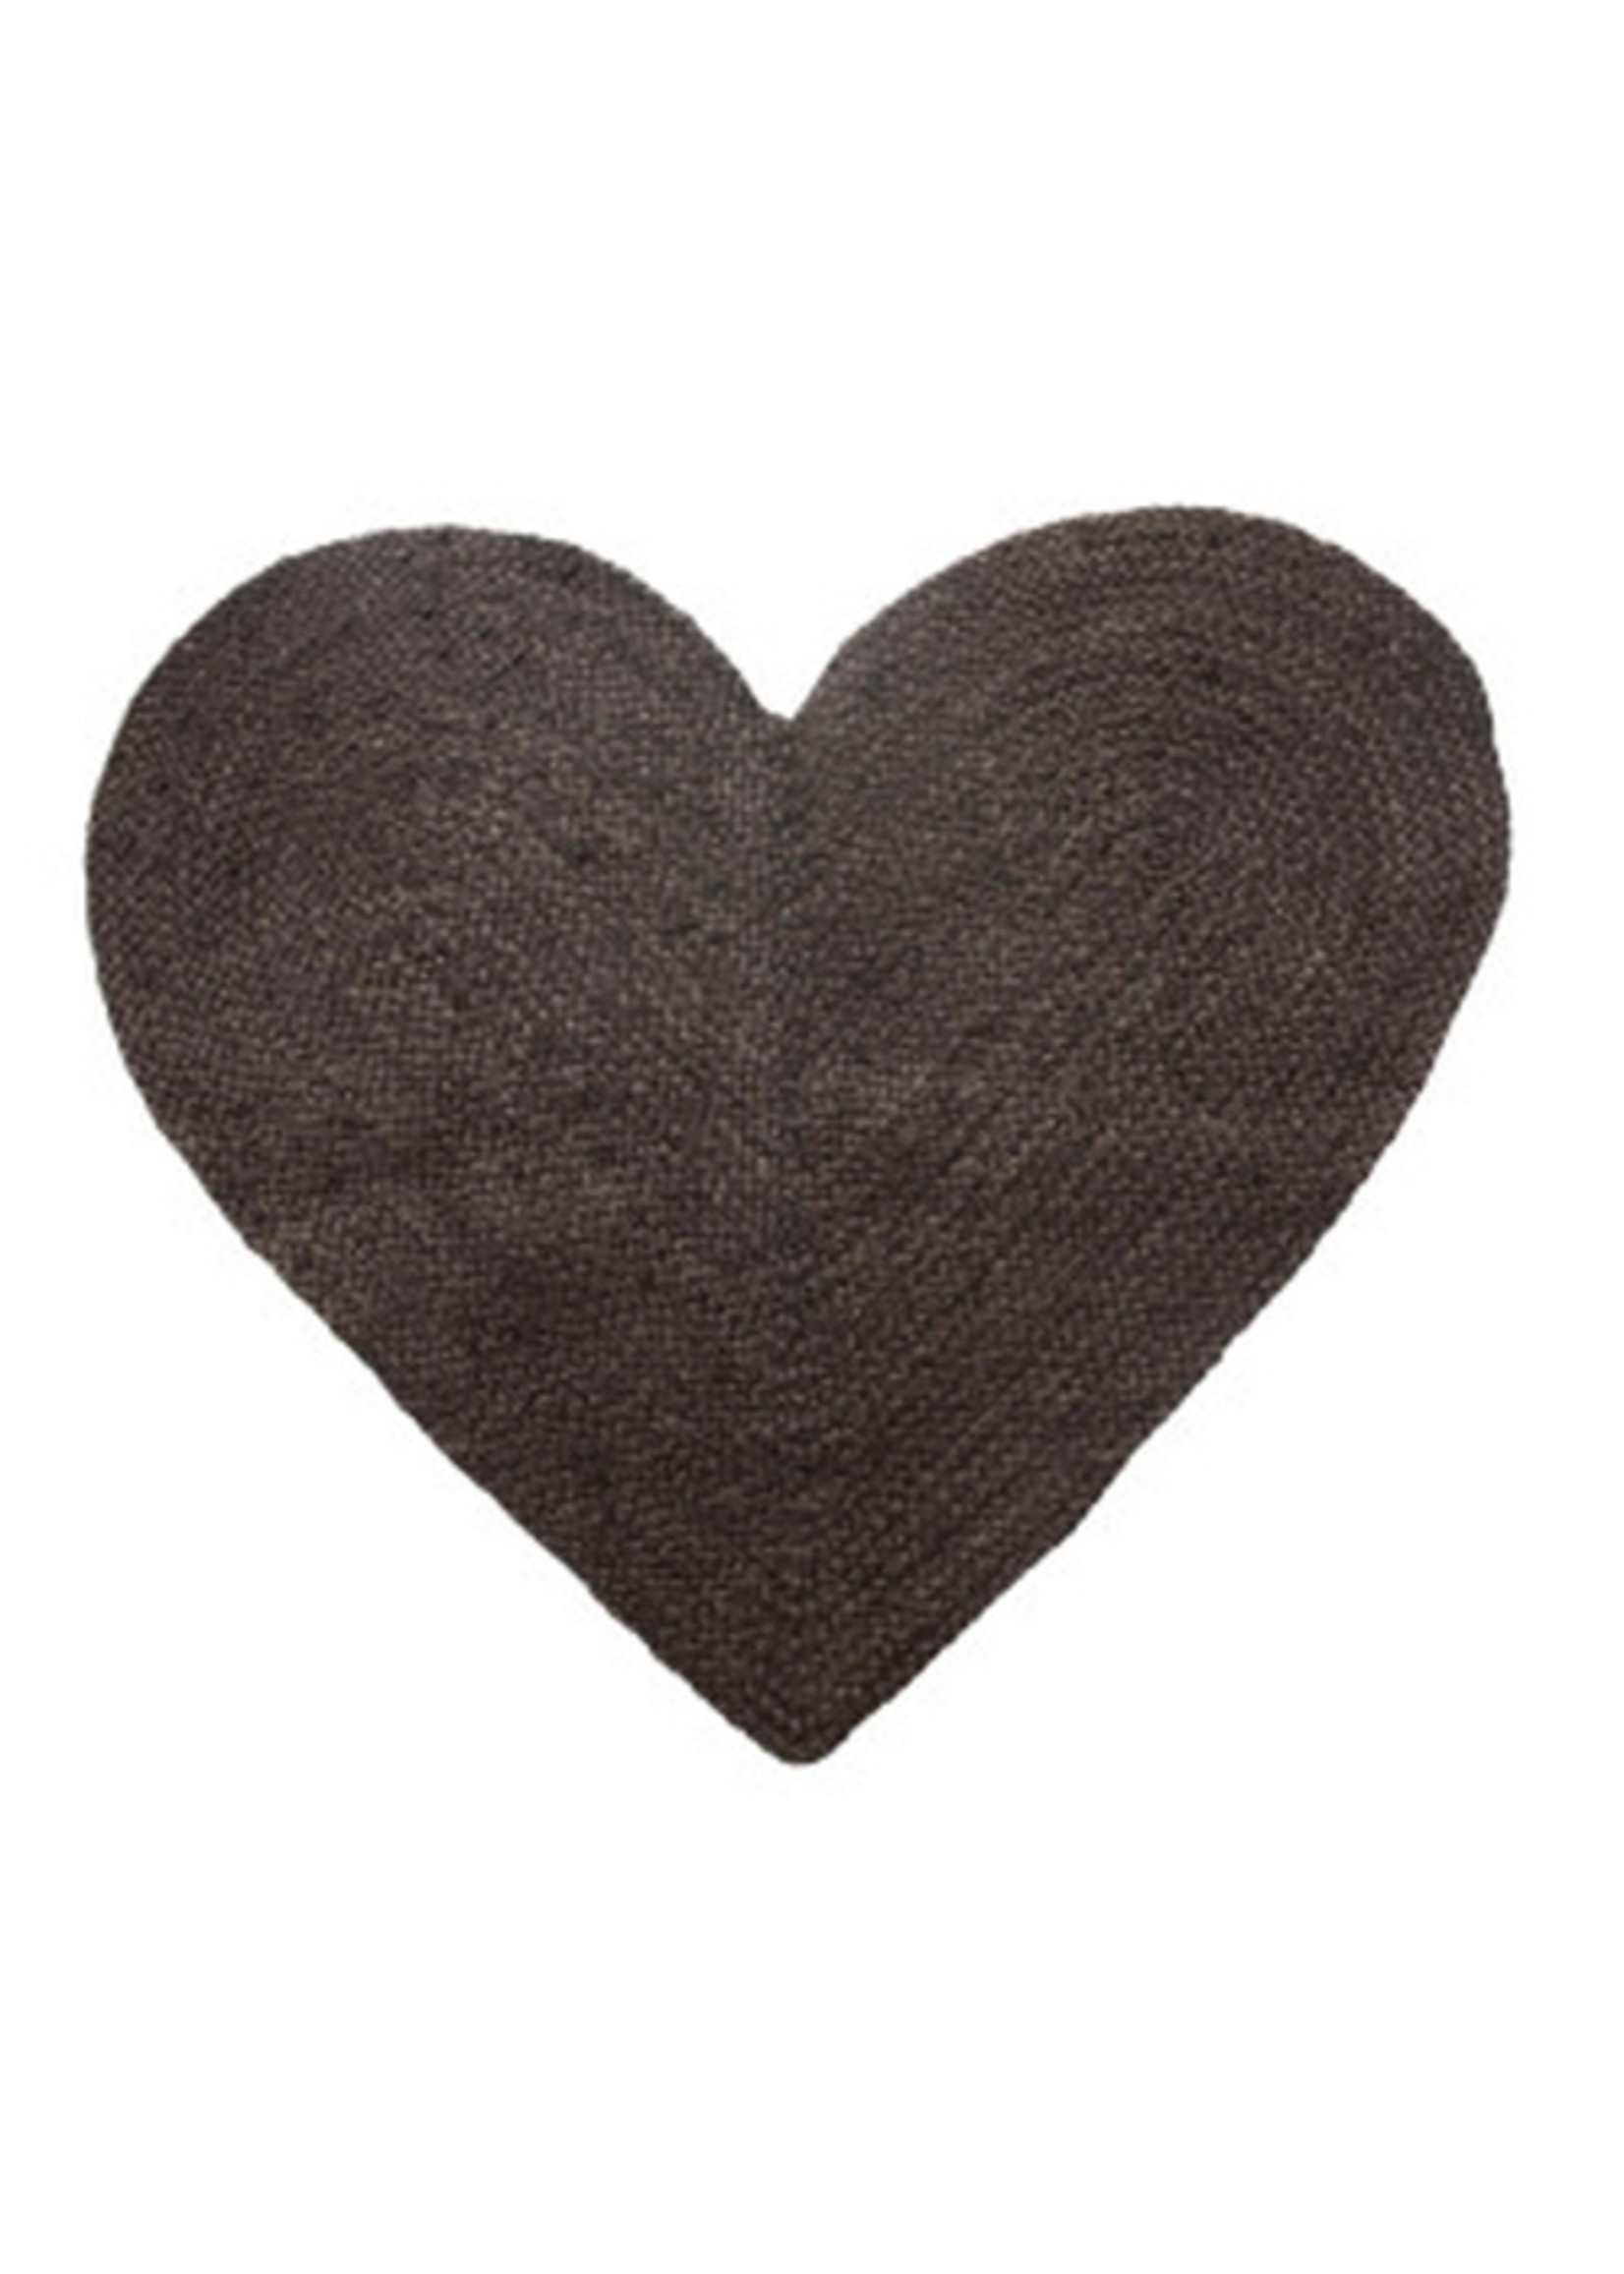 Braided Jute and Cotton Heart Shaped Rug